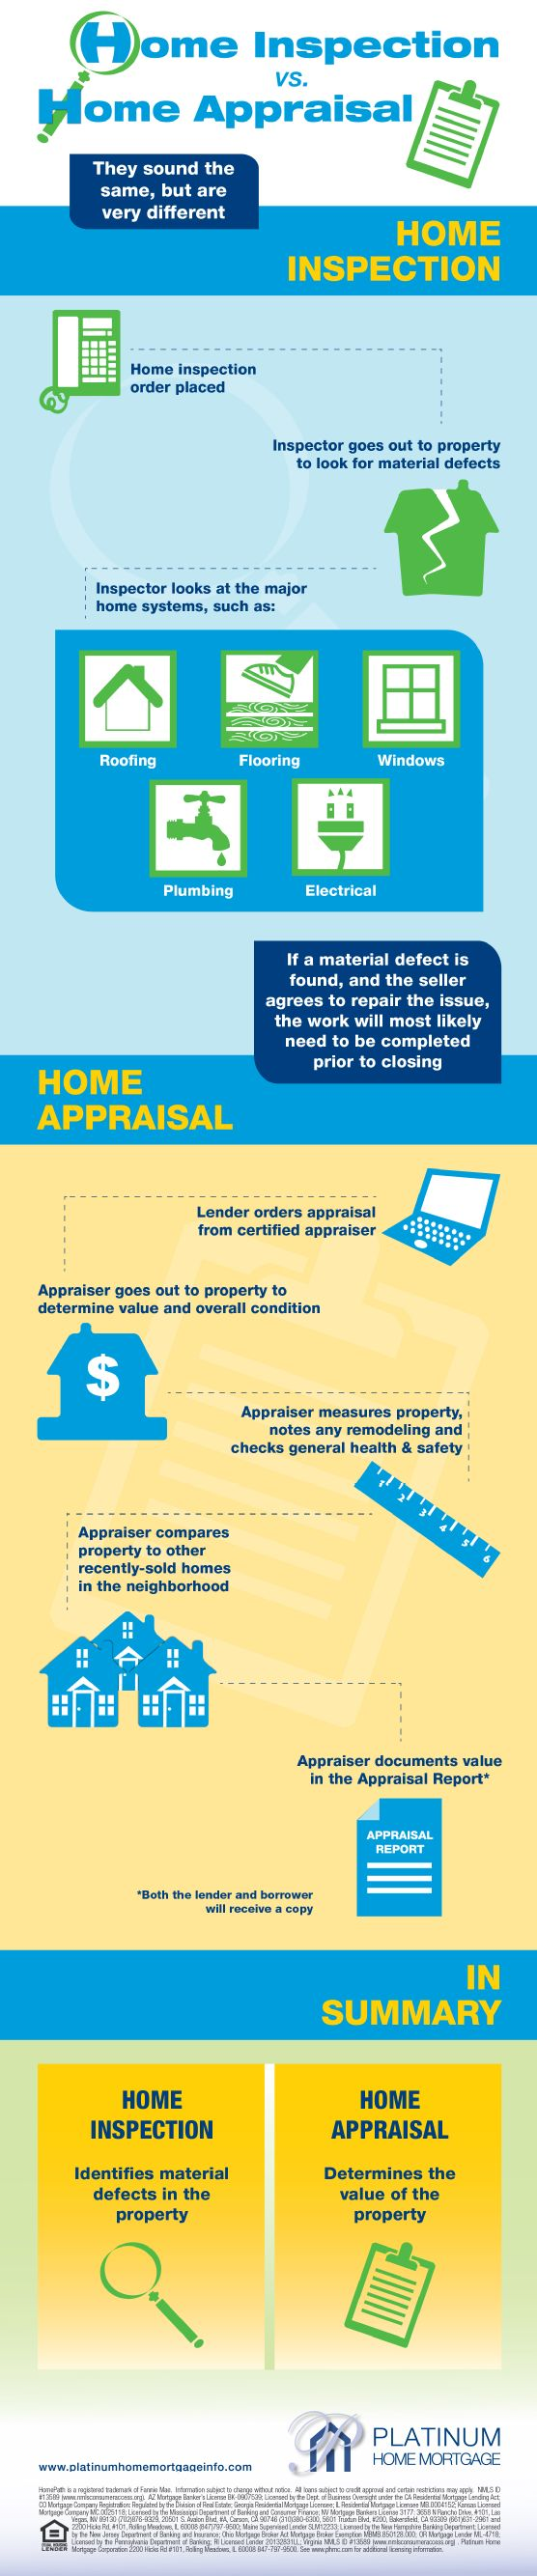 Is it a Home Inspection or a Home Appraisal?